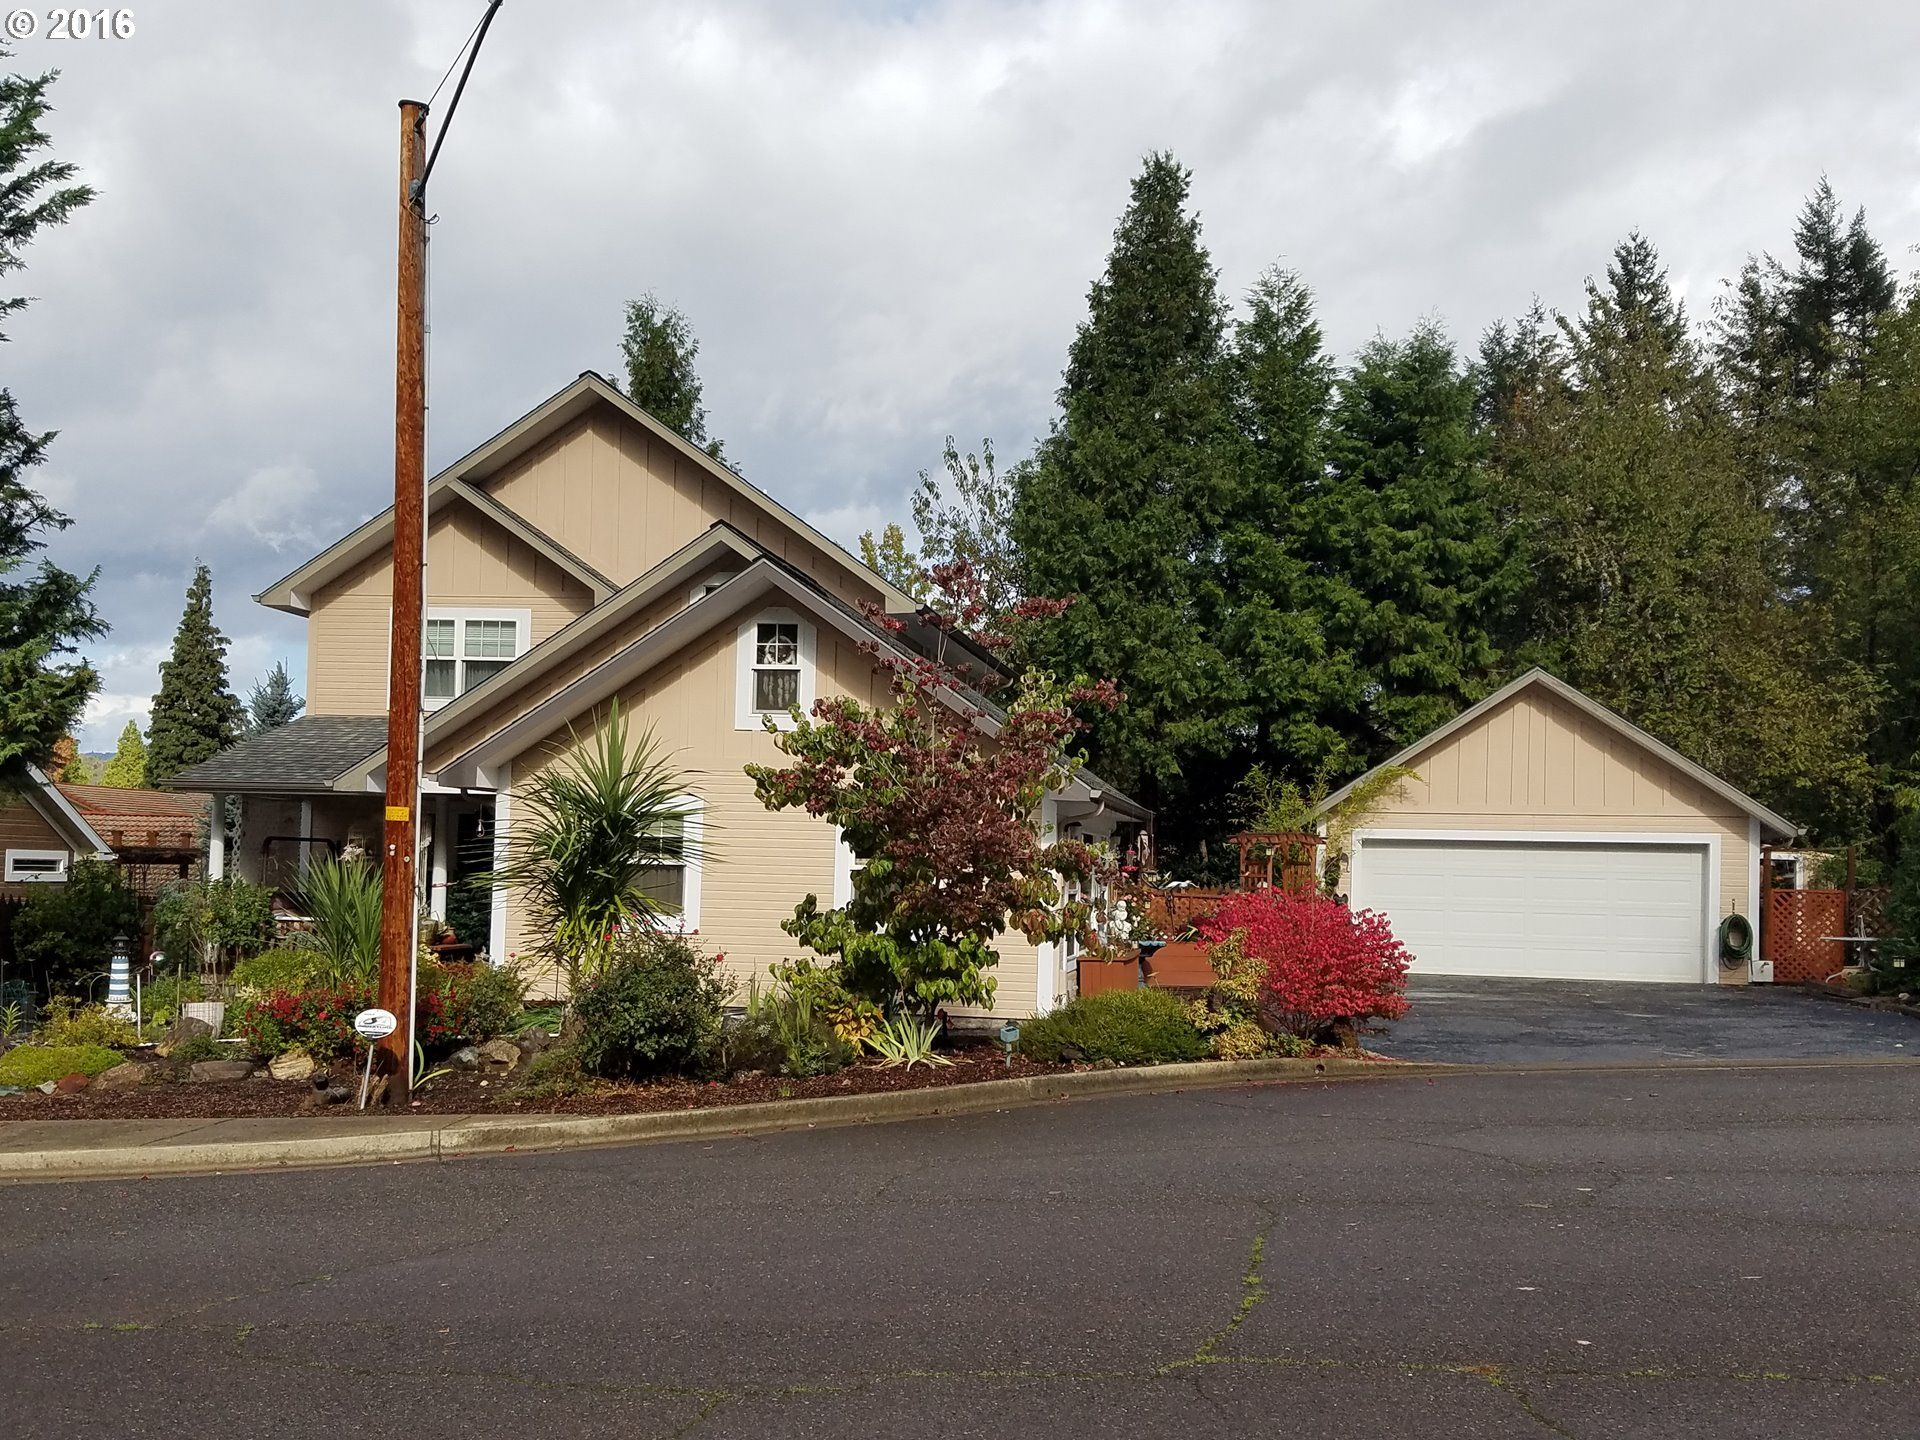 myrtle creek singles over 50 This newly foreclosed single family home property is located at 351 indian lane, myrtle creek, or 97457 it has 3 bedrooms and 25 bathrooms on 2368 sqft.